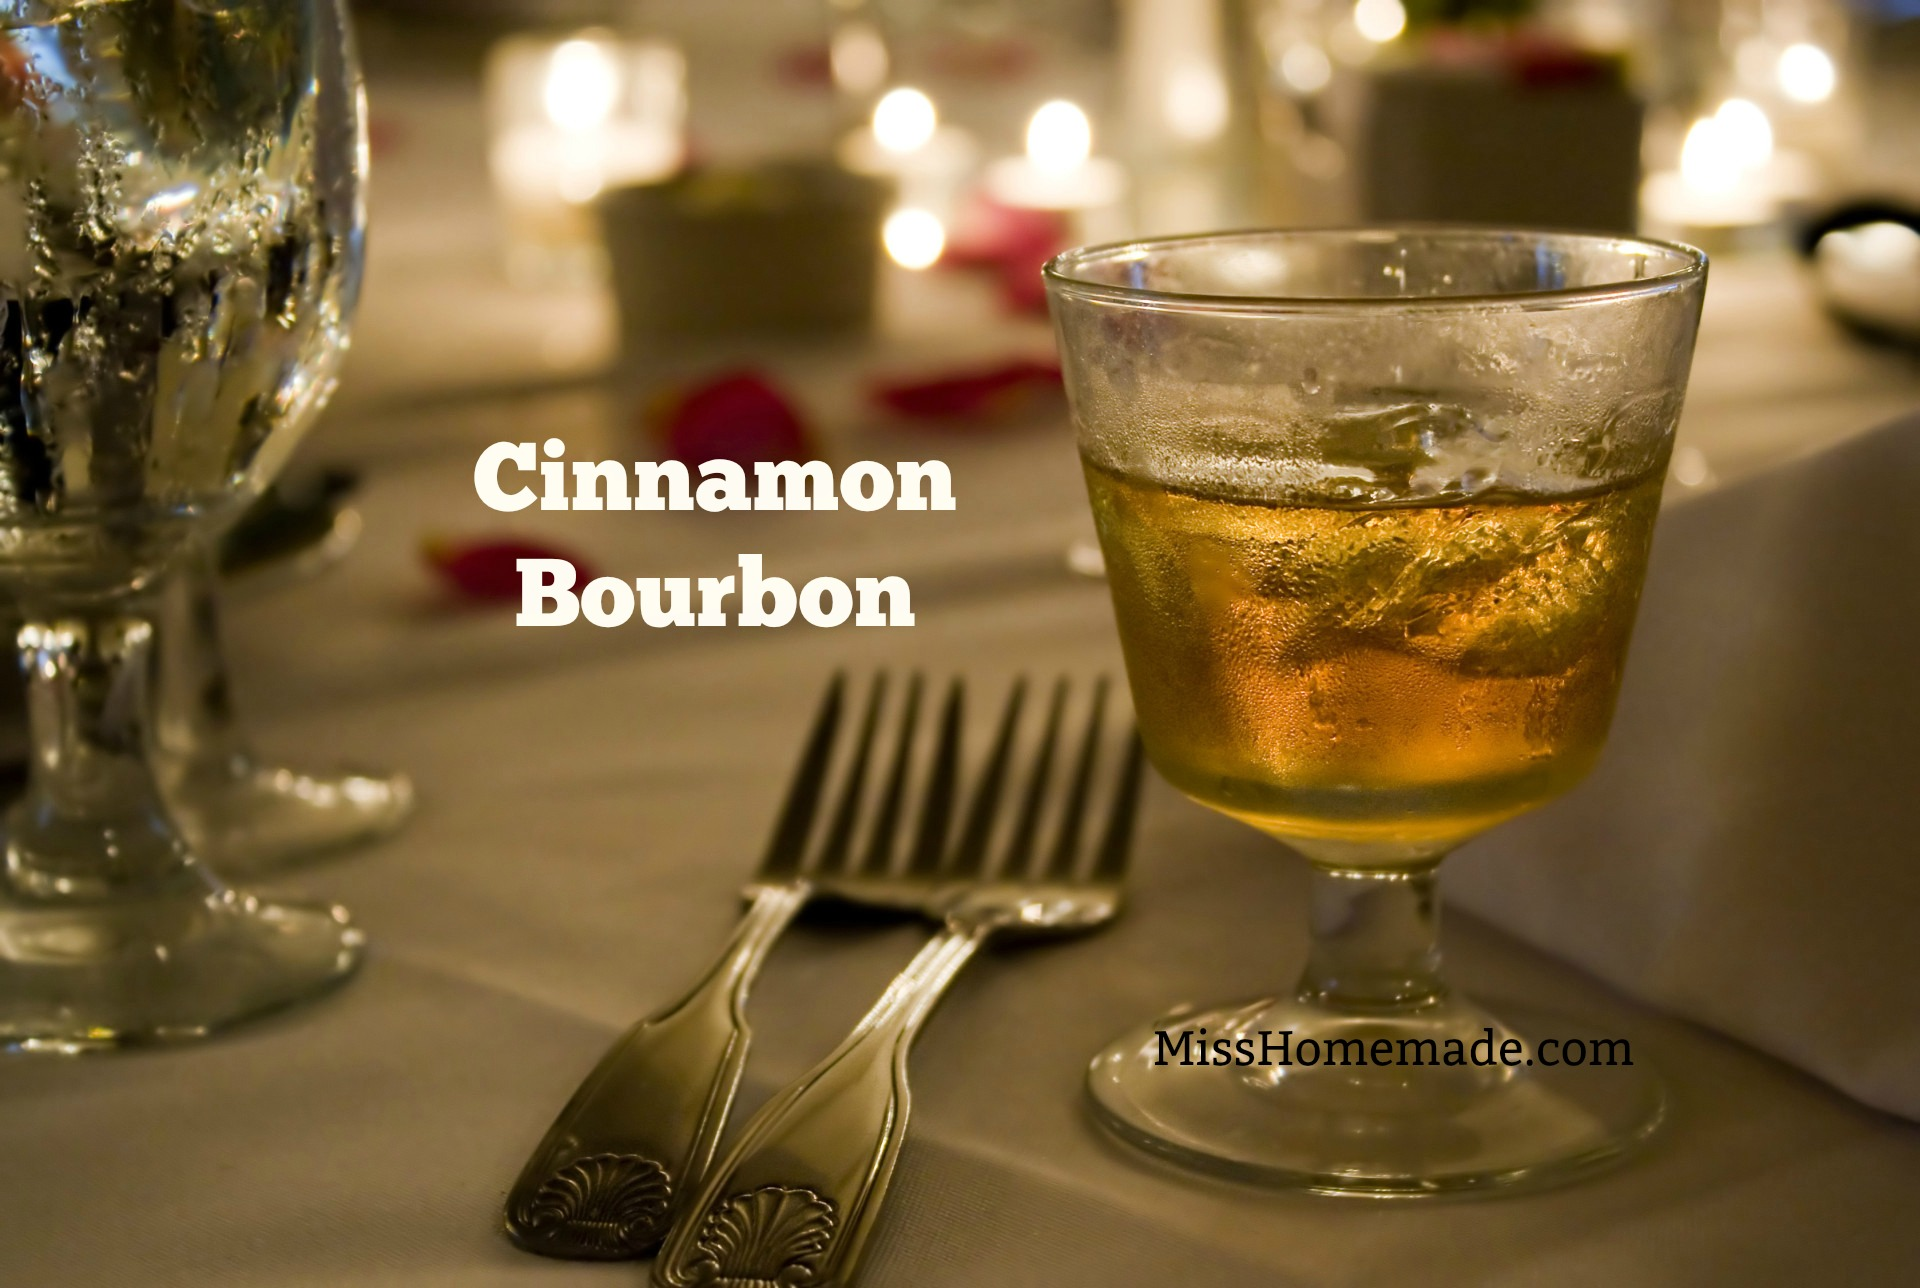 How to Make Holiday Cinnamon Bourbon (Brandy, Whiskey, Vodka too) - this and more at MissHomemade.com